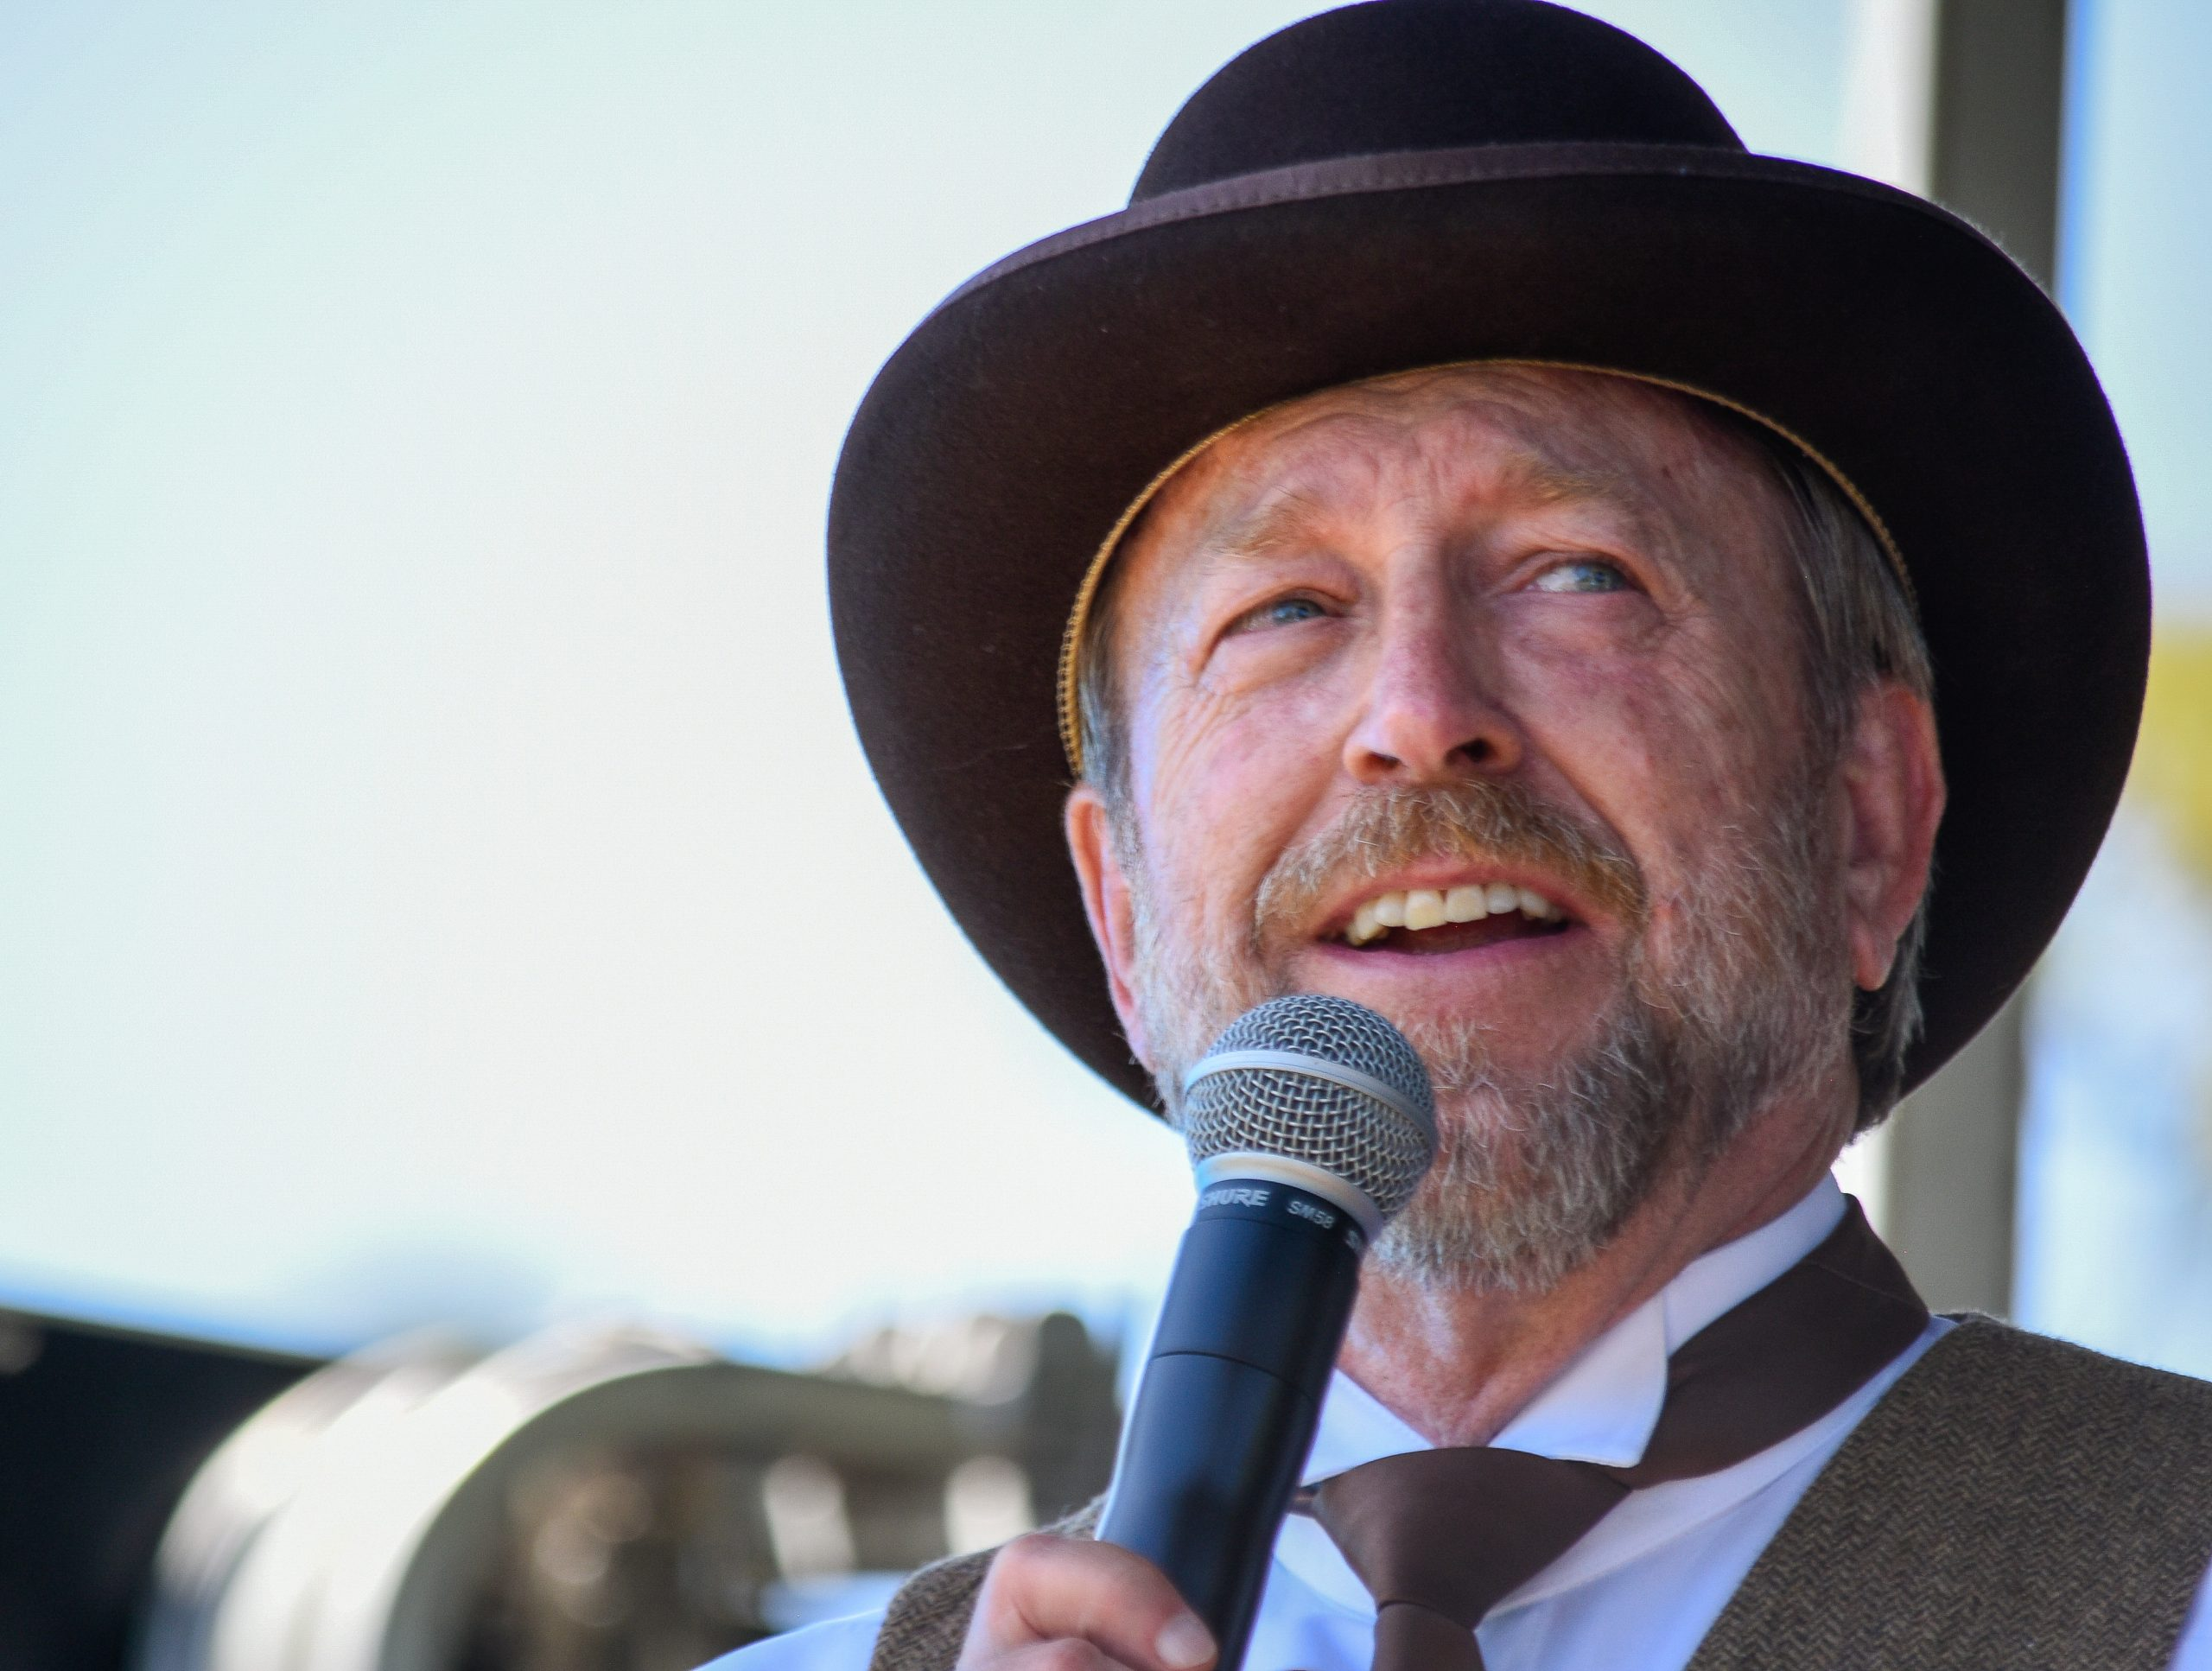 Colorado Springs Mayor John Suthers judged a beard contest at the Beards, Bonnets and Brews festival in Colorado Springs. He also grew a beard and wore period clothing for the sesquicentennial celebration. June 12, 2021